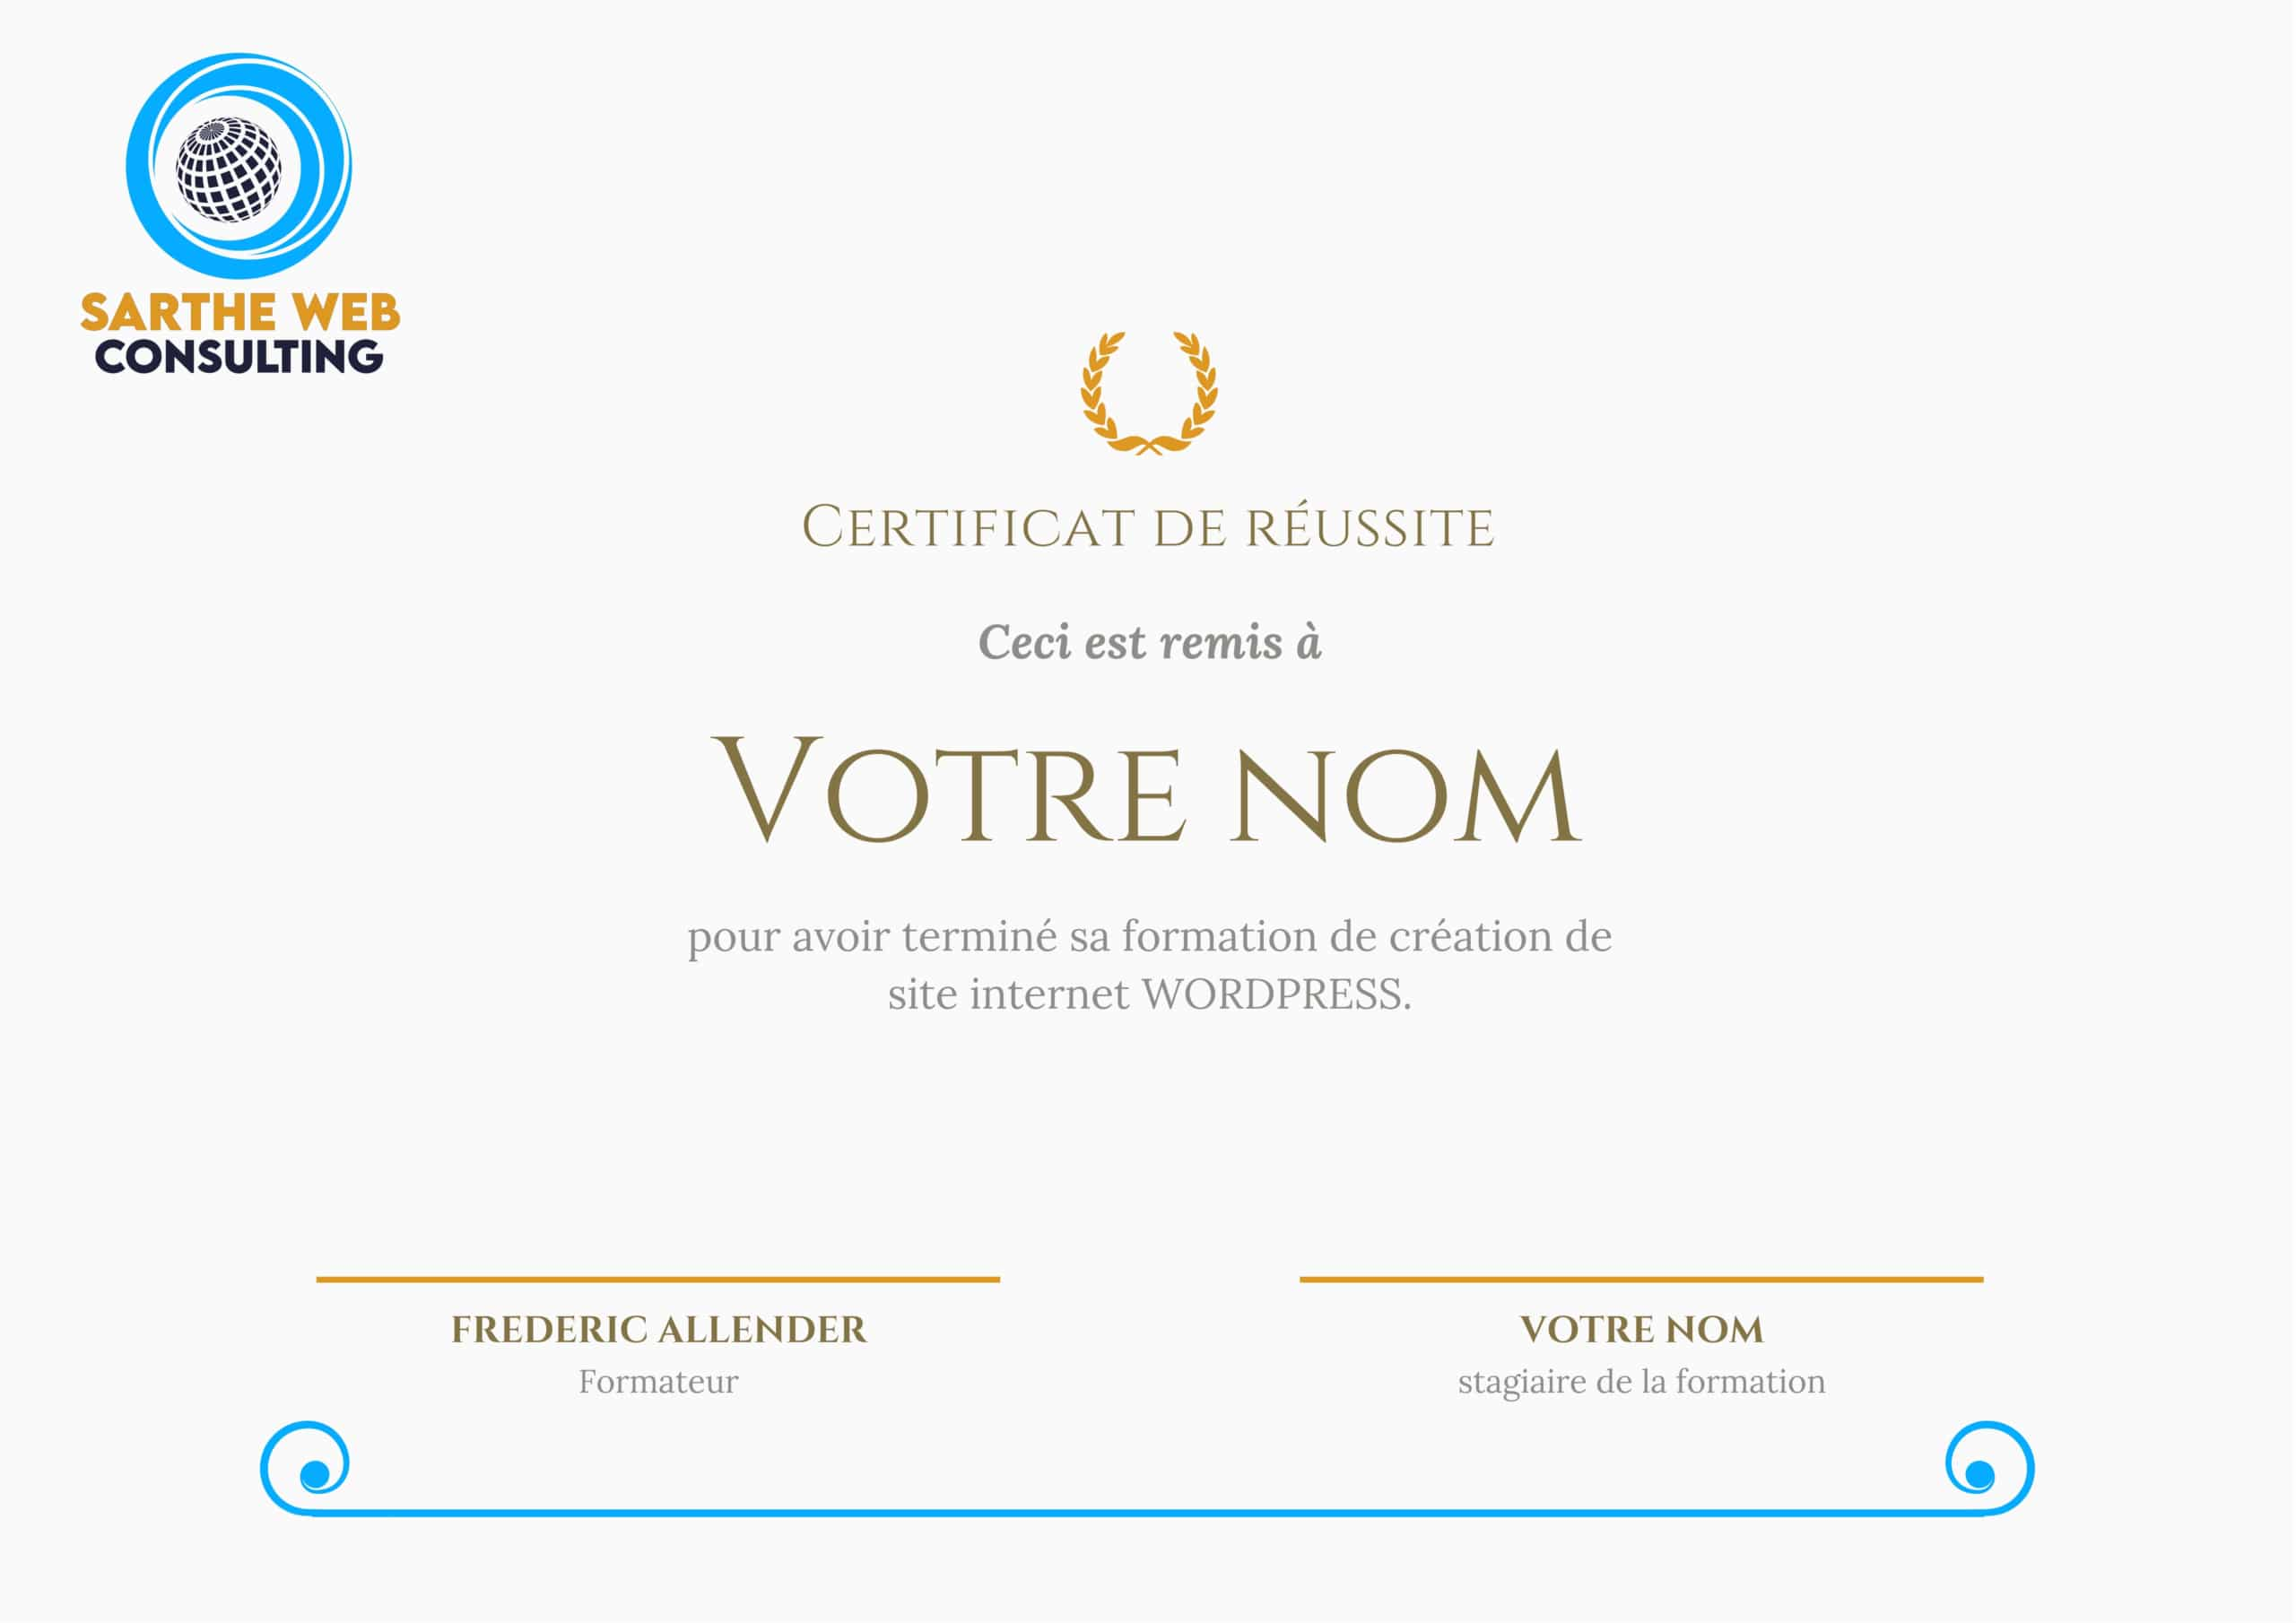 Formation site internet wordpress en Sarthe avec Sarthewebconsulting